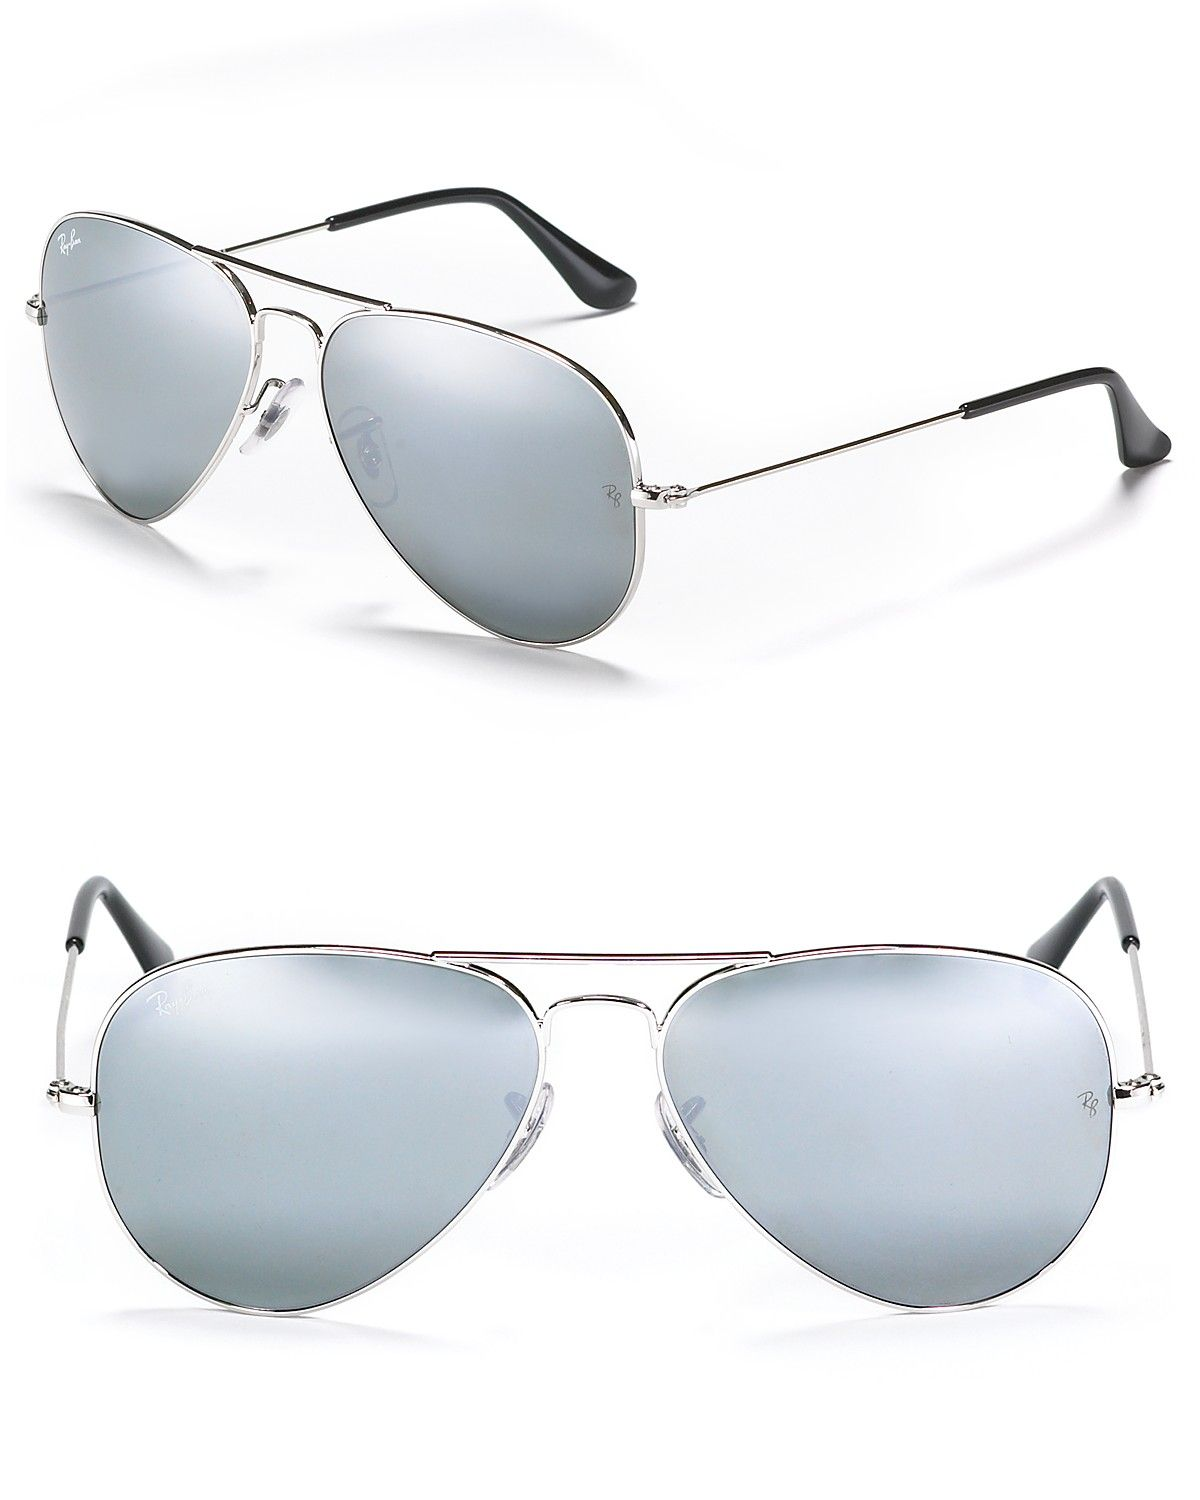 1000+ images about Mens sunglasses on Pinterest | Blue mirrors, Ray ban aviator and Cow